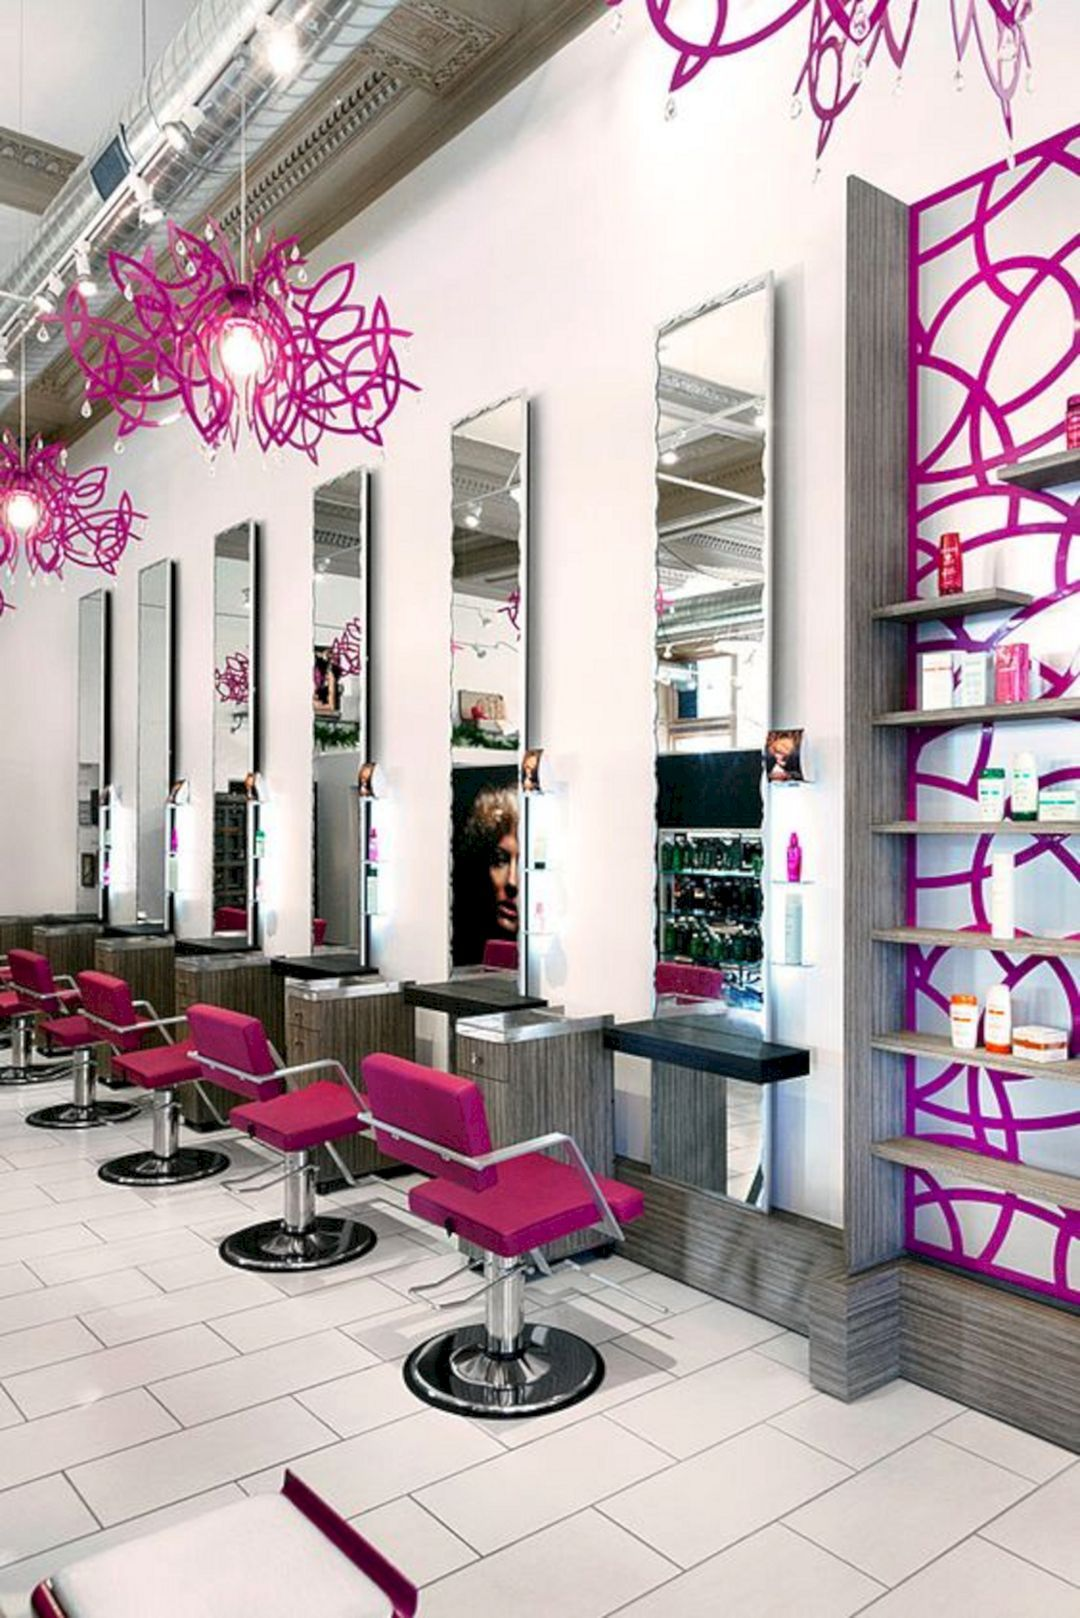 Nice 50 Beautiful Design And Layout For The Perfect Salon Interior Https Decoredo Com 9152 50 Beautiful Hair Salon Design Salon Decor Salon Interior Design